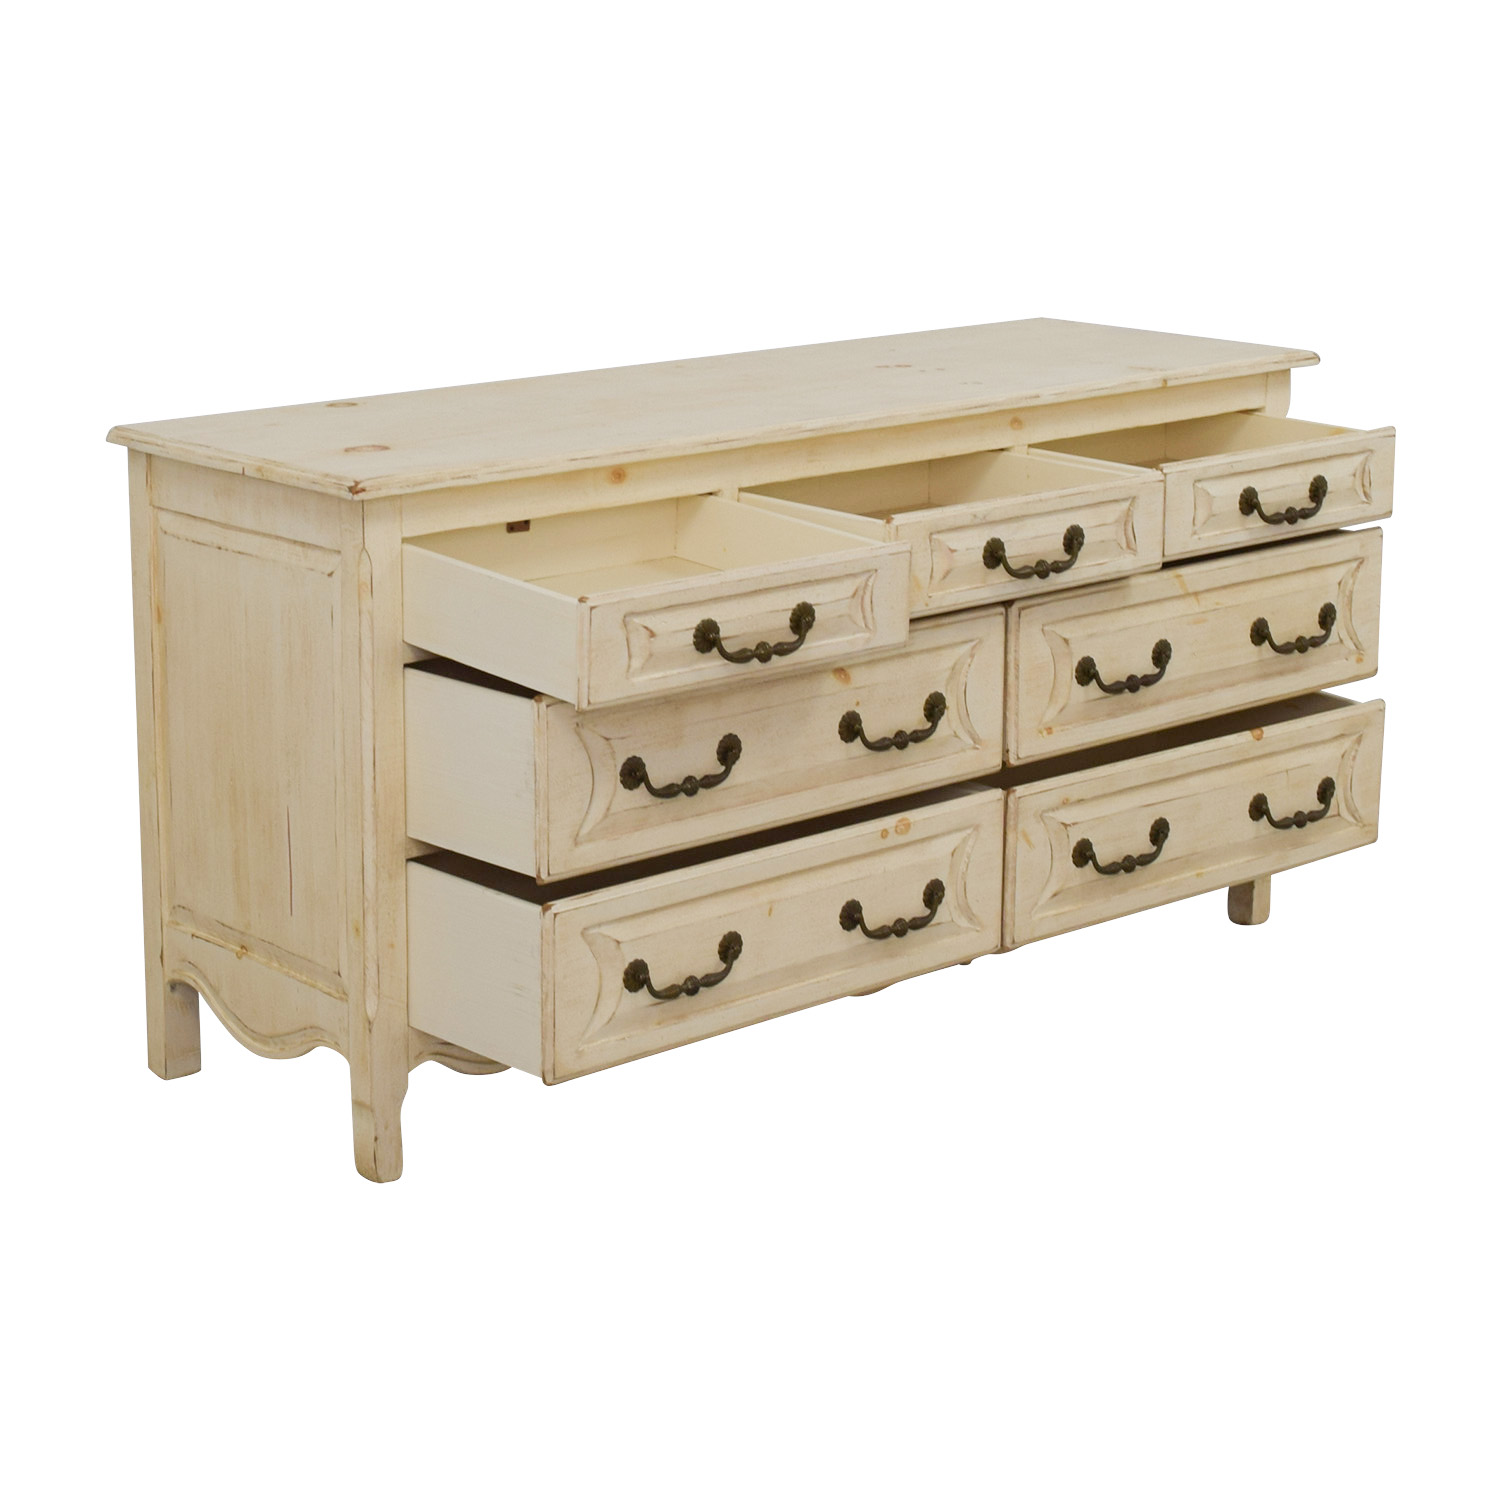 Habersham Plantation Habersham Plantation Distressed Seven-Drawer Distressed Cream Double Dresser for sale